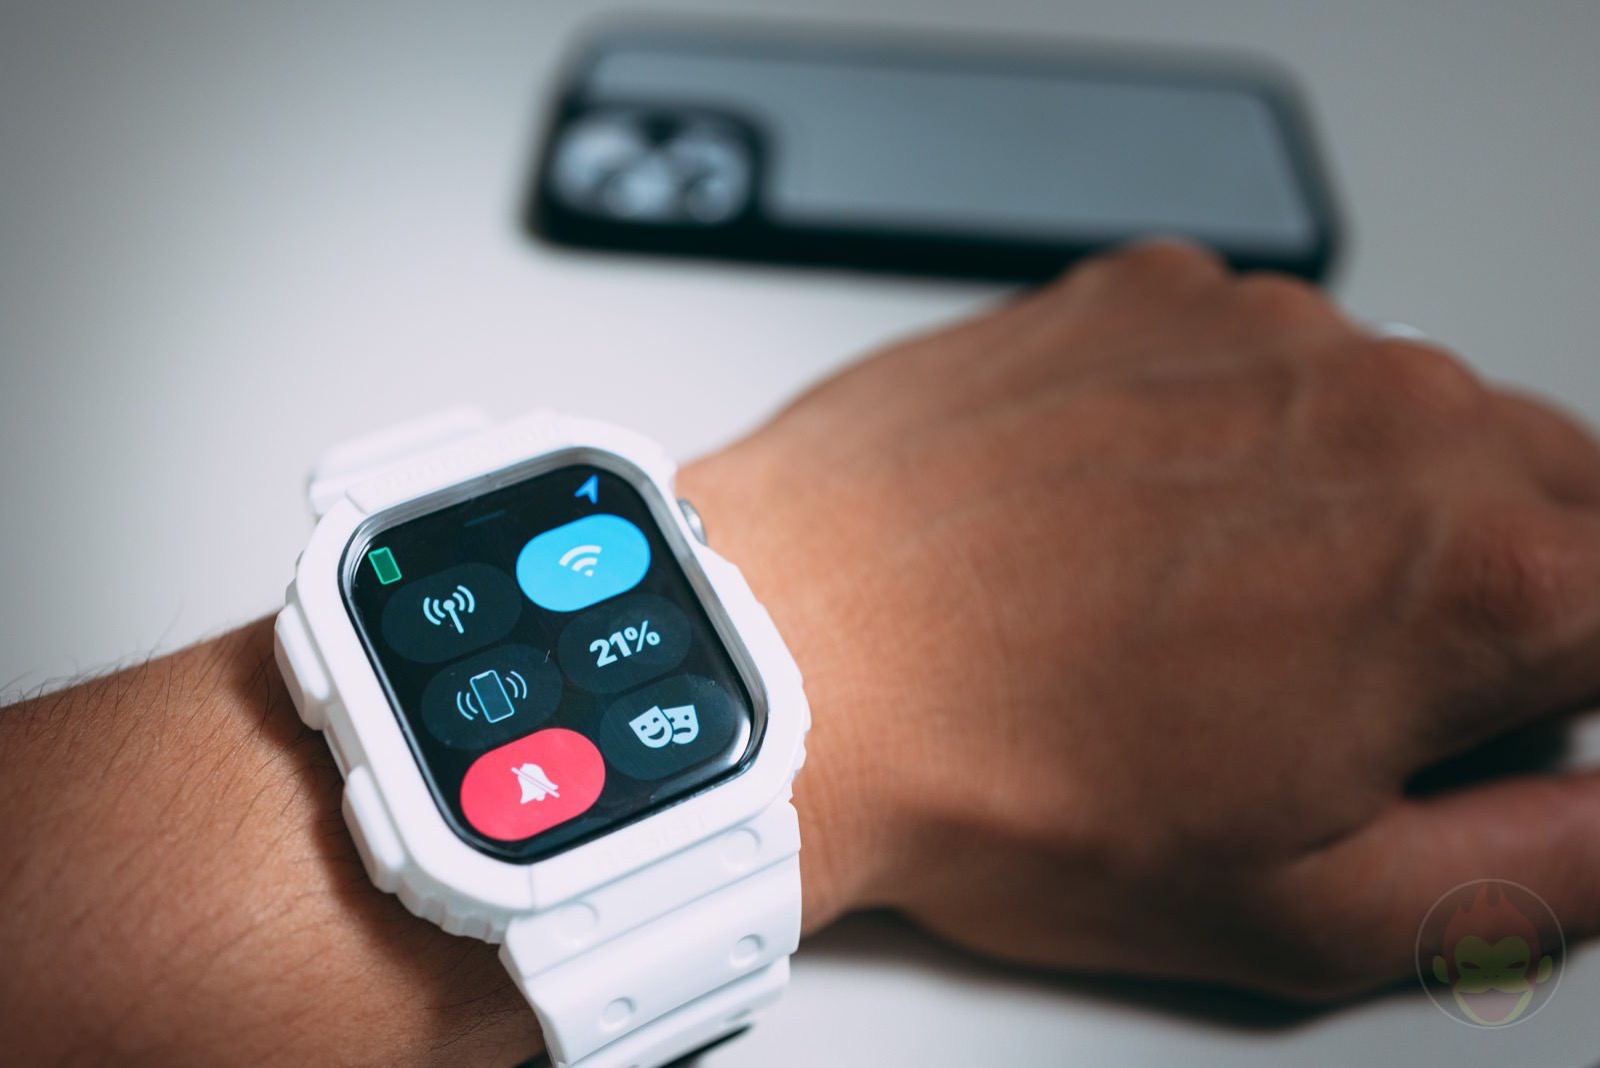 Finding iPhone with Apple Watch